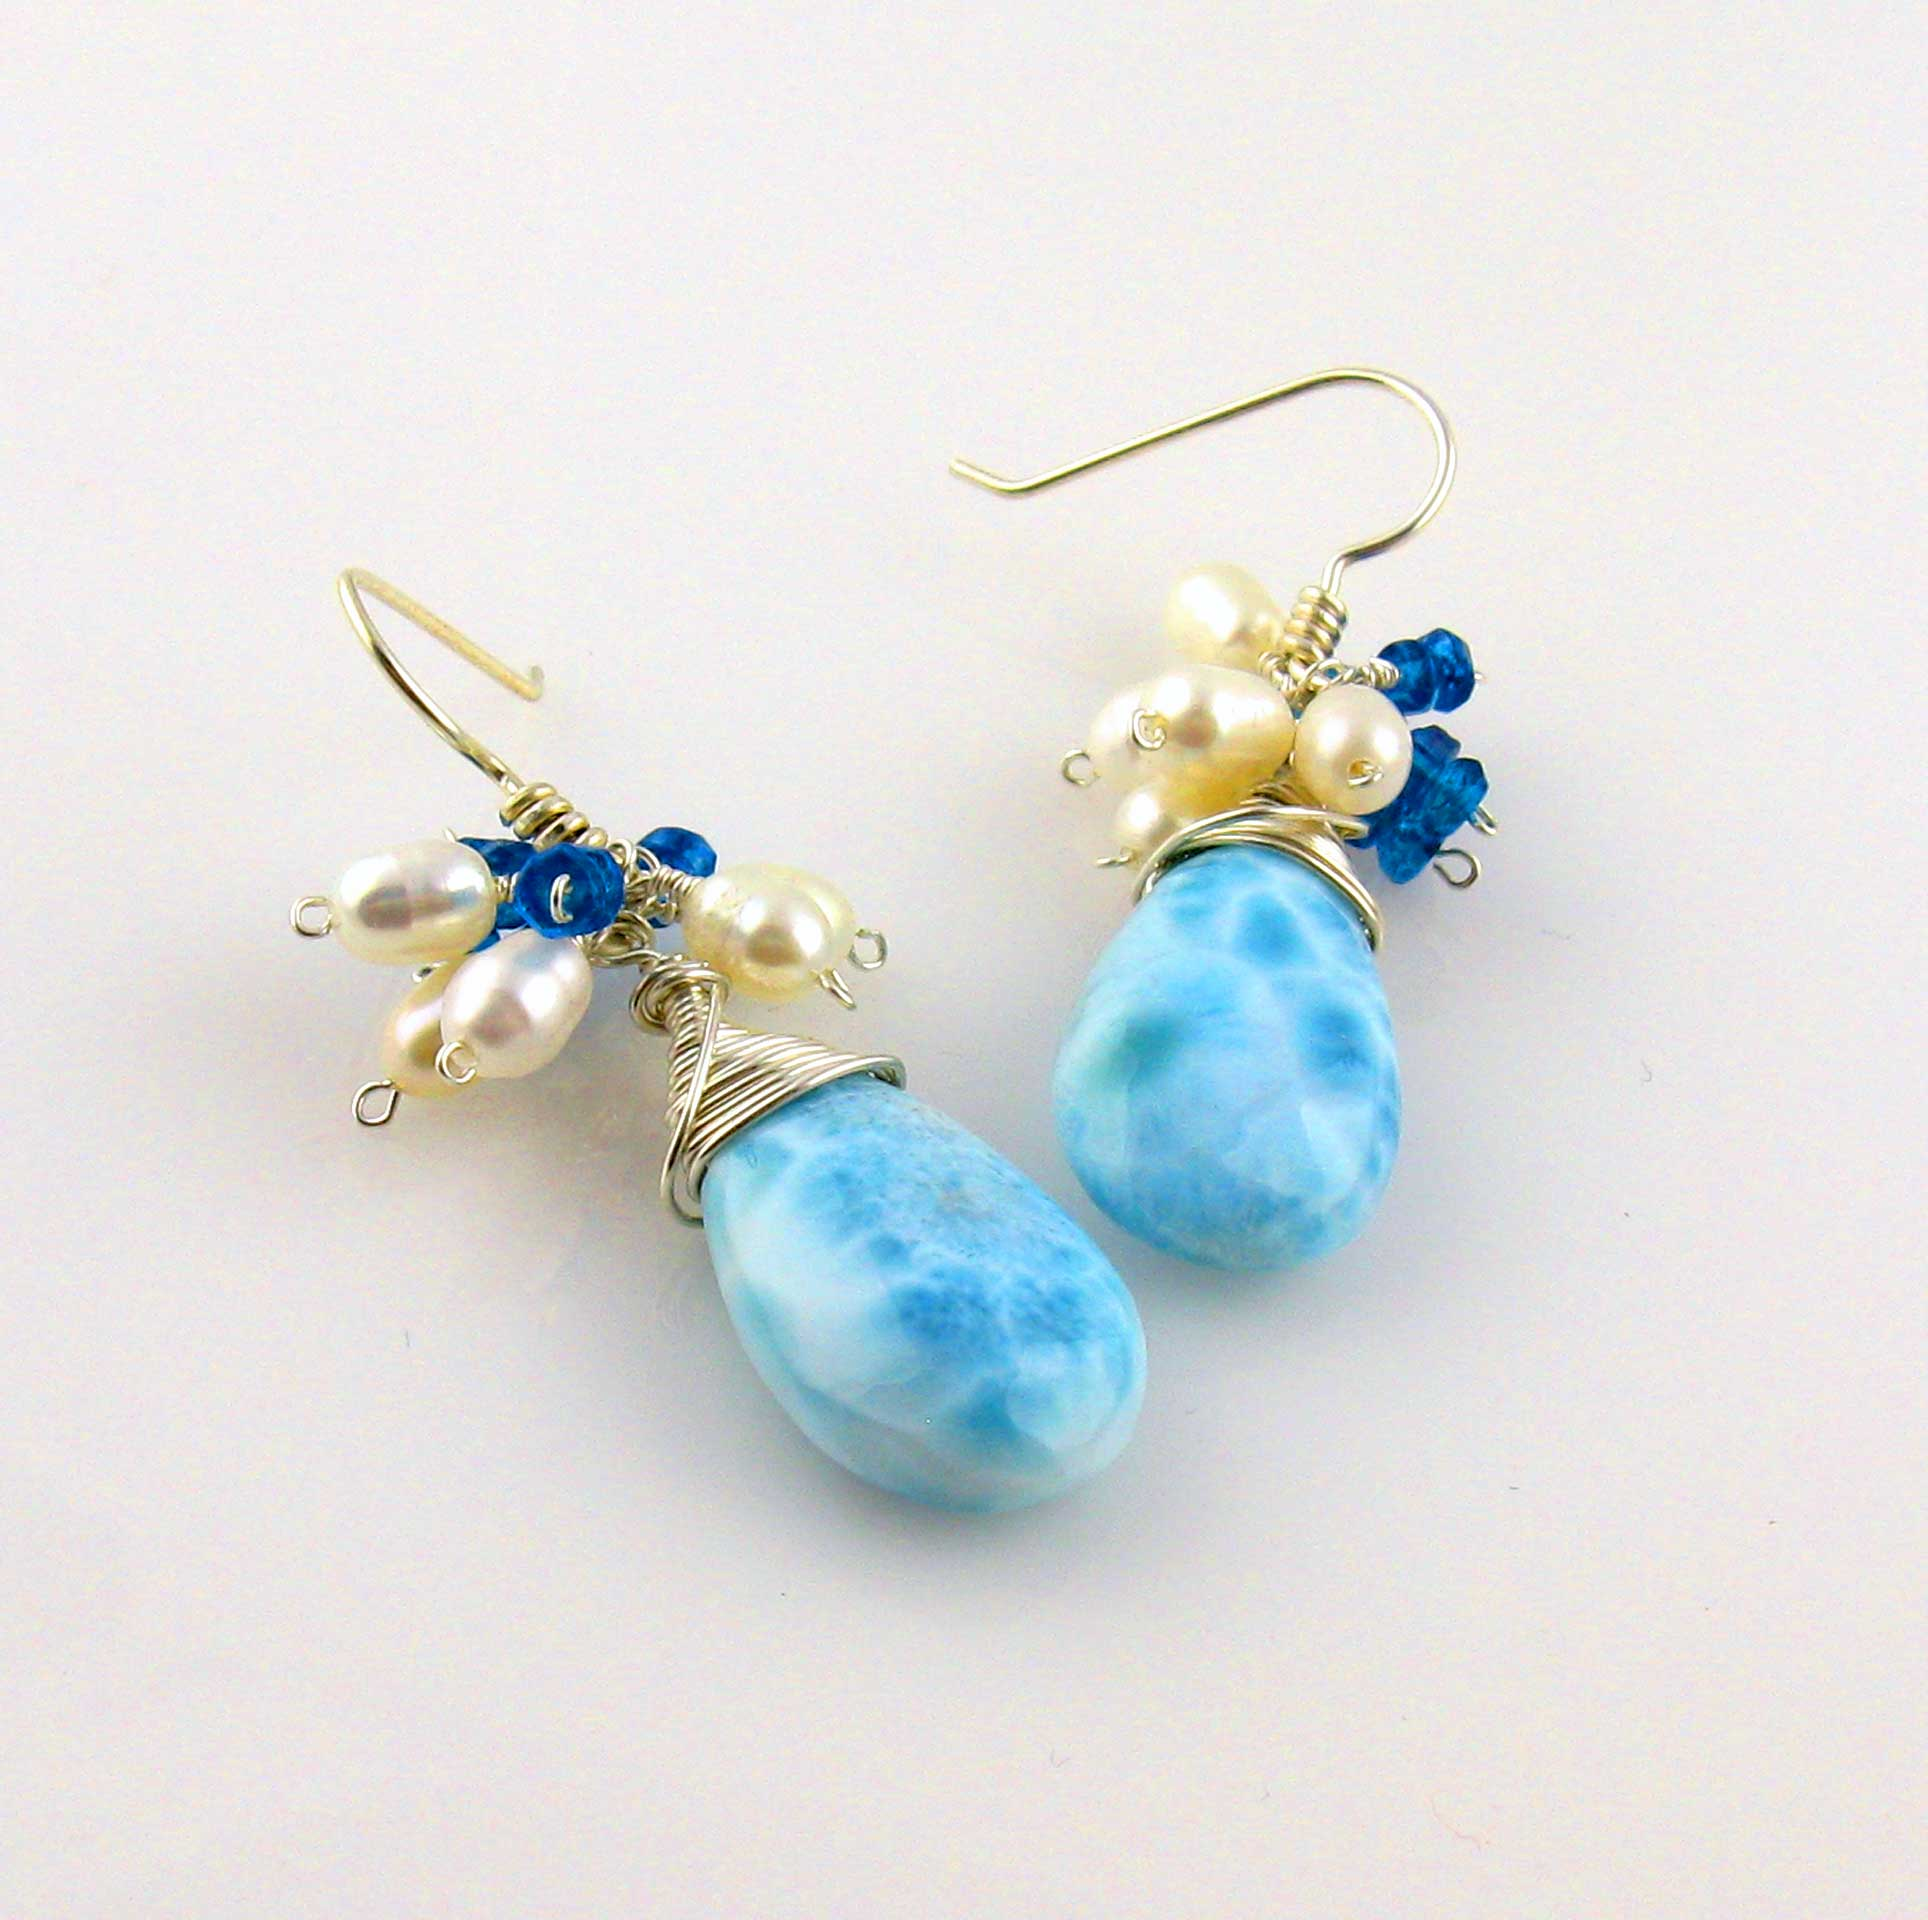 clutching dangles hands earrings products with apatite verdilune